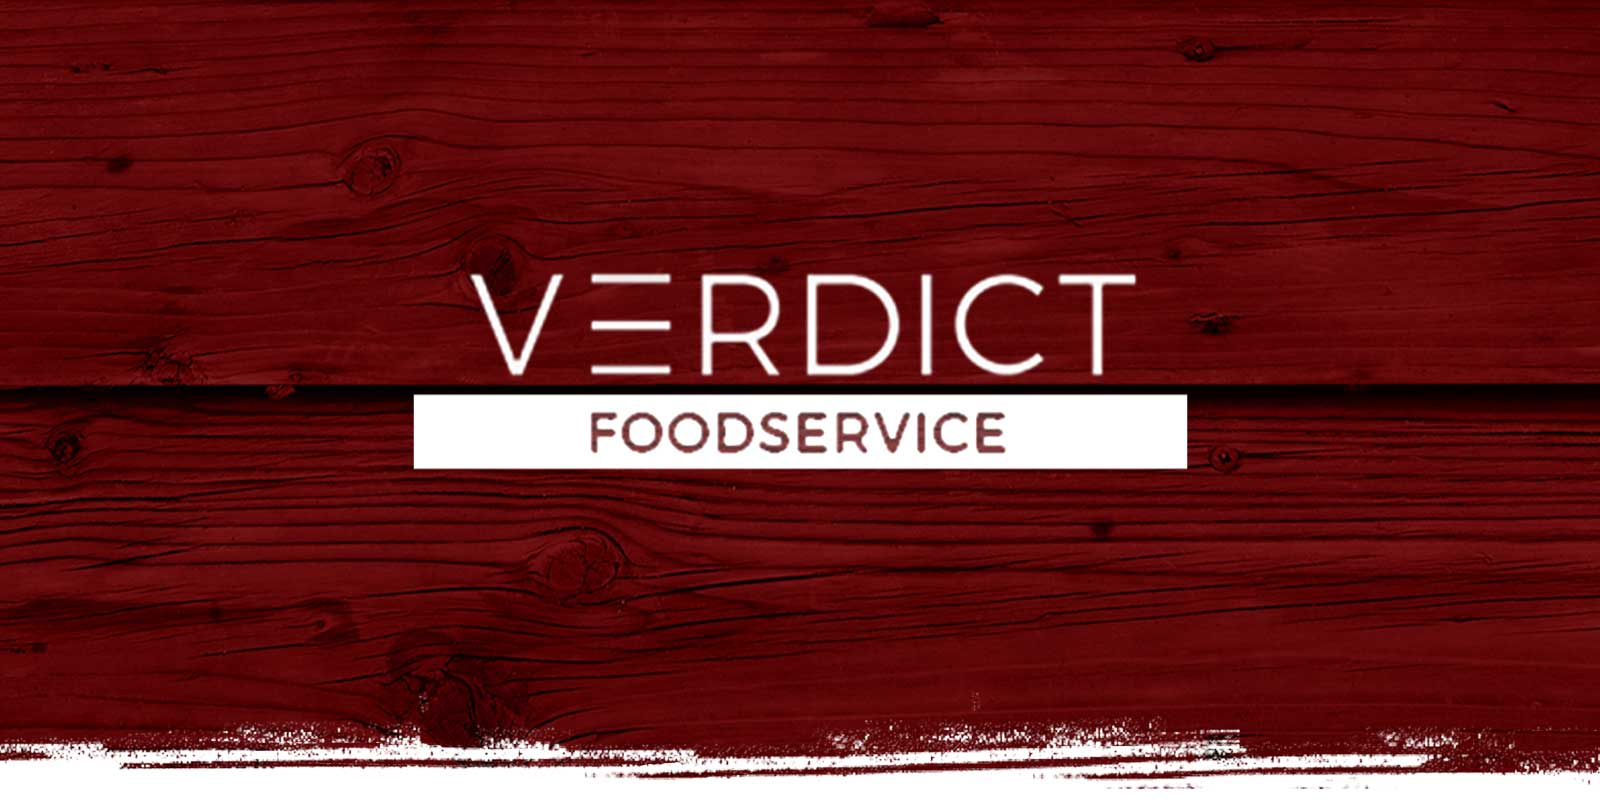 Verdict Foodservice logo on red weathered wood background